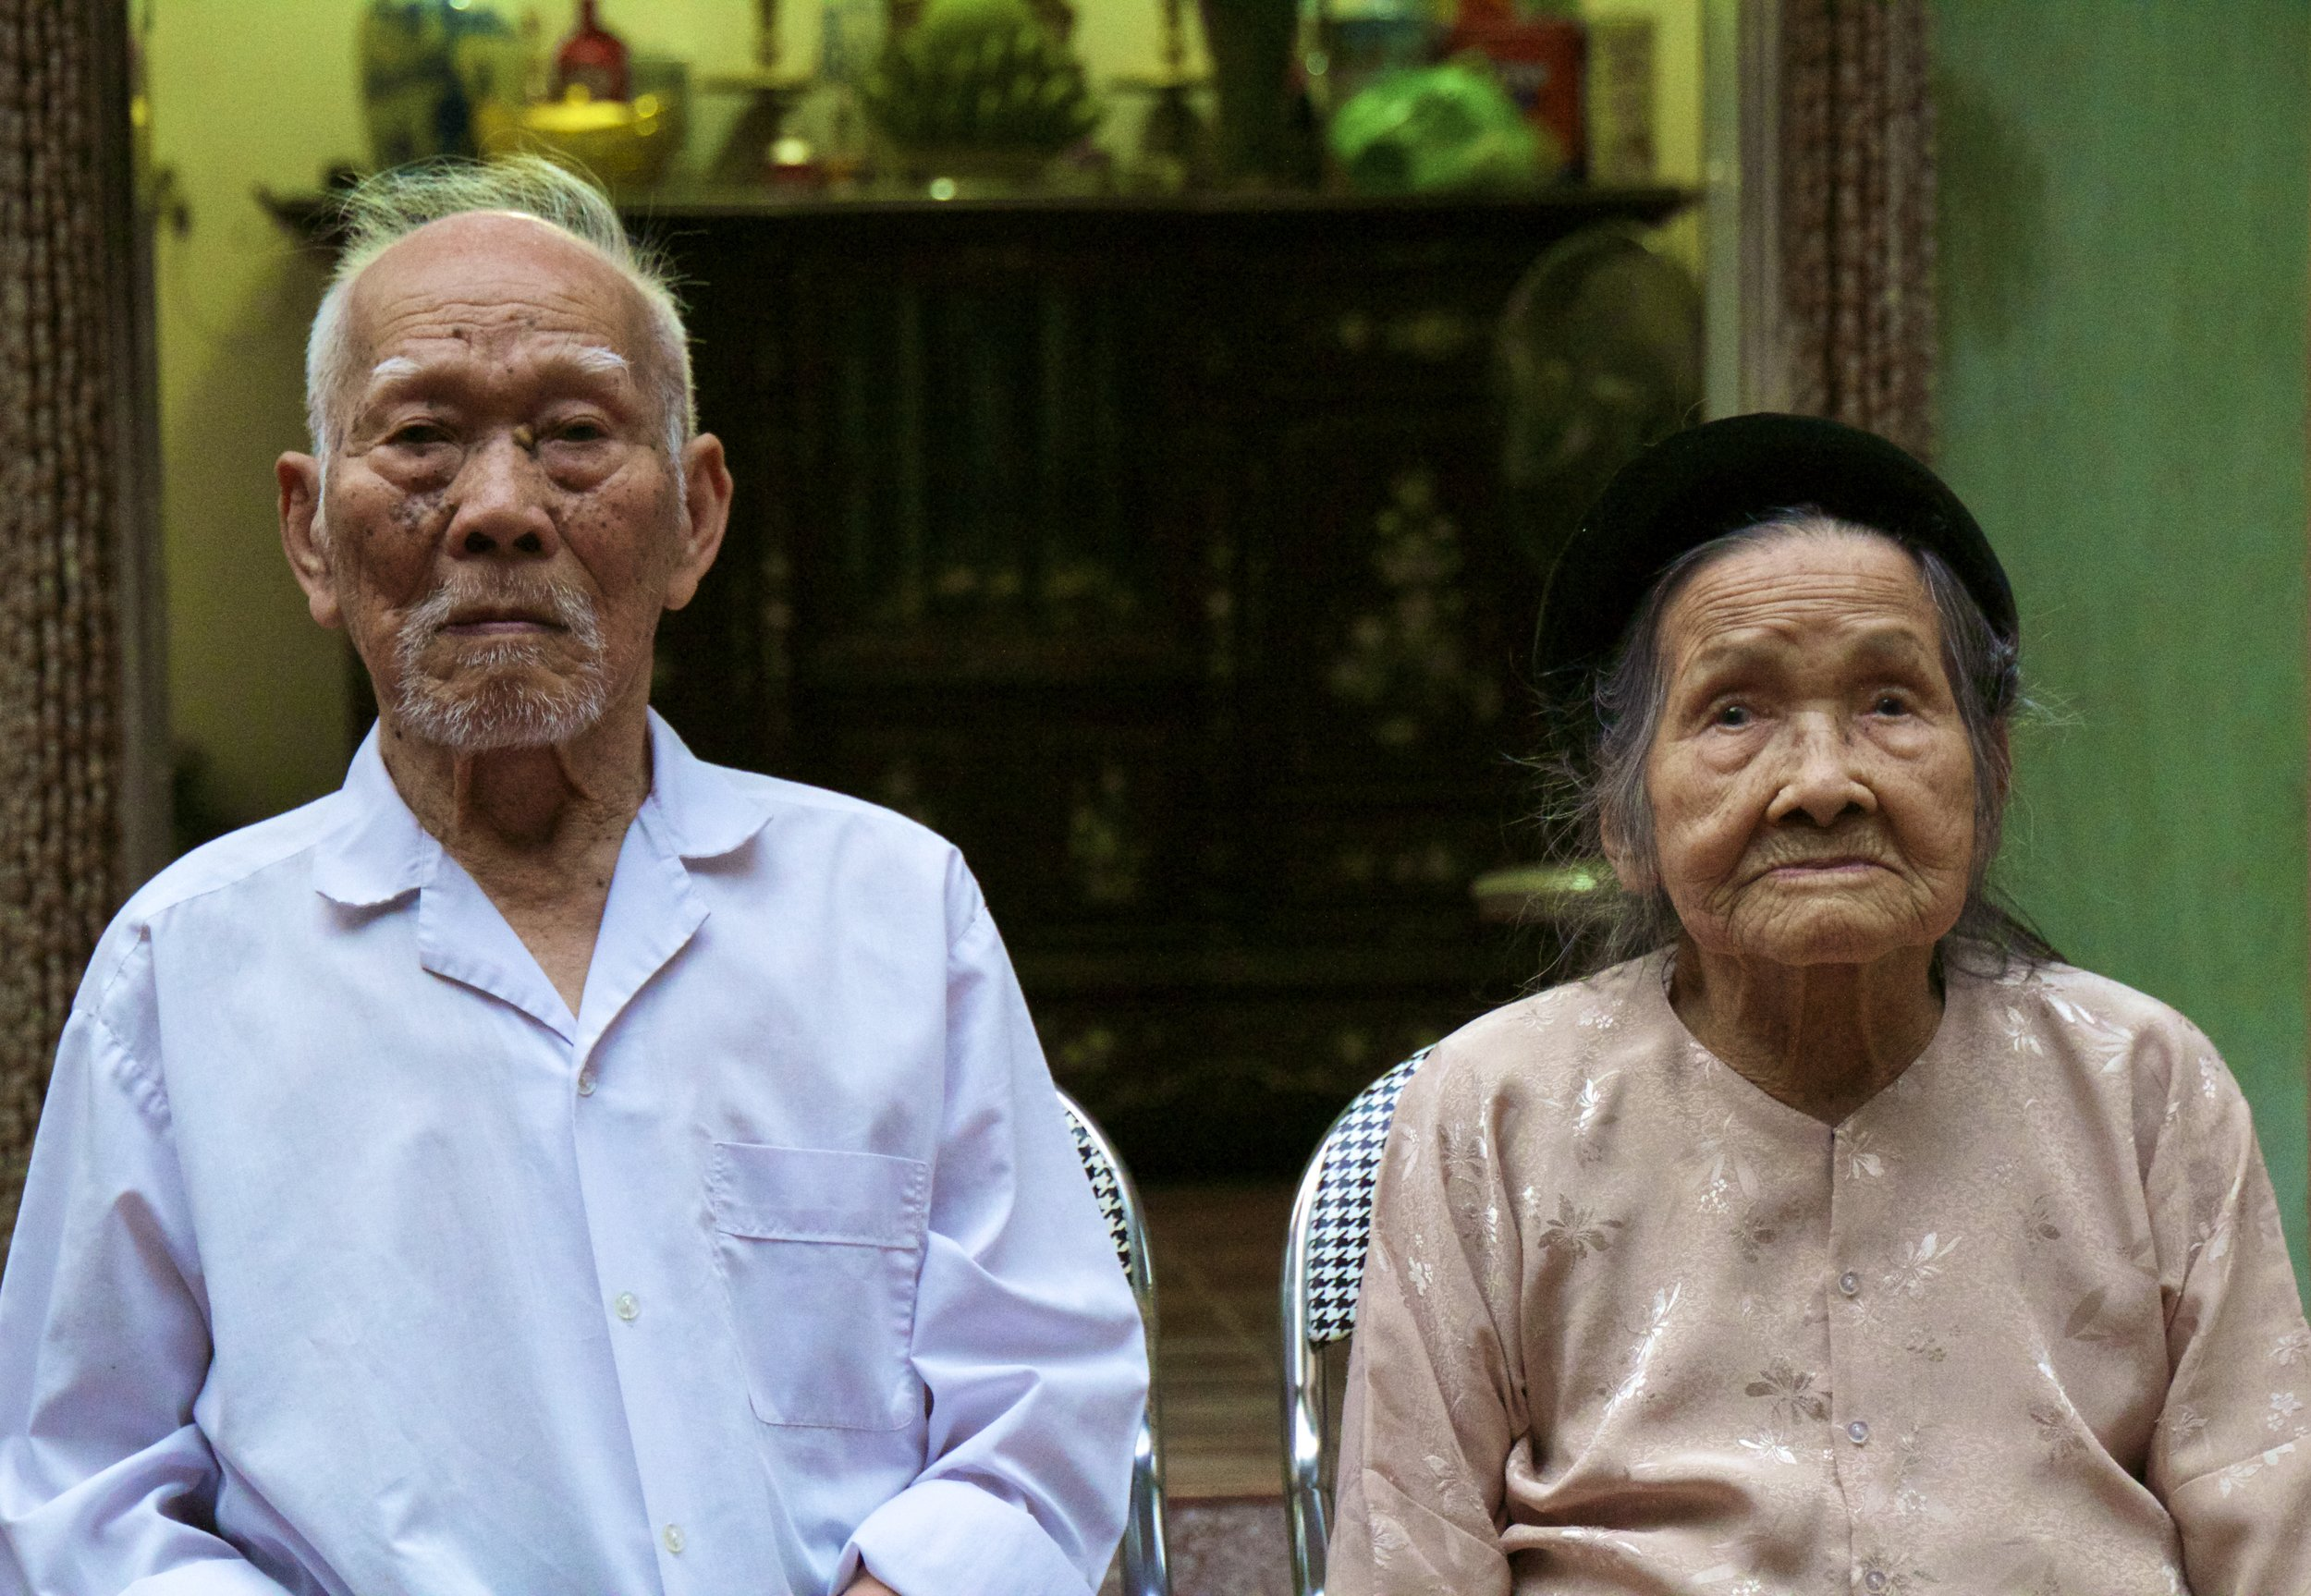 Bac Ninh Vietnamese great grandparents 3.jpg